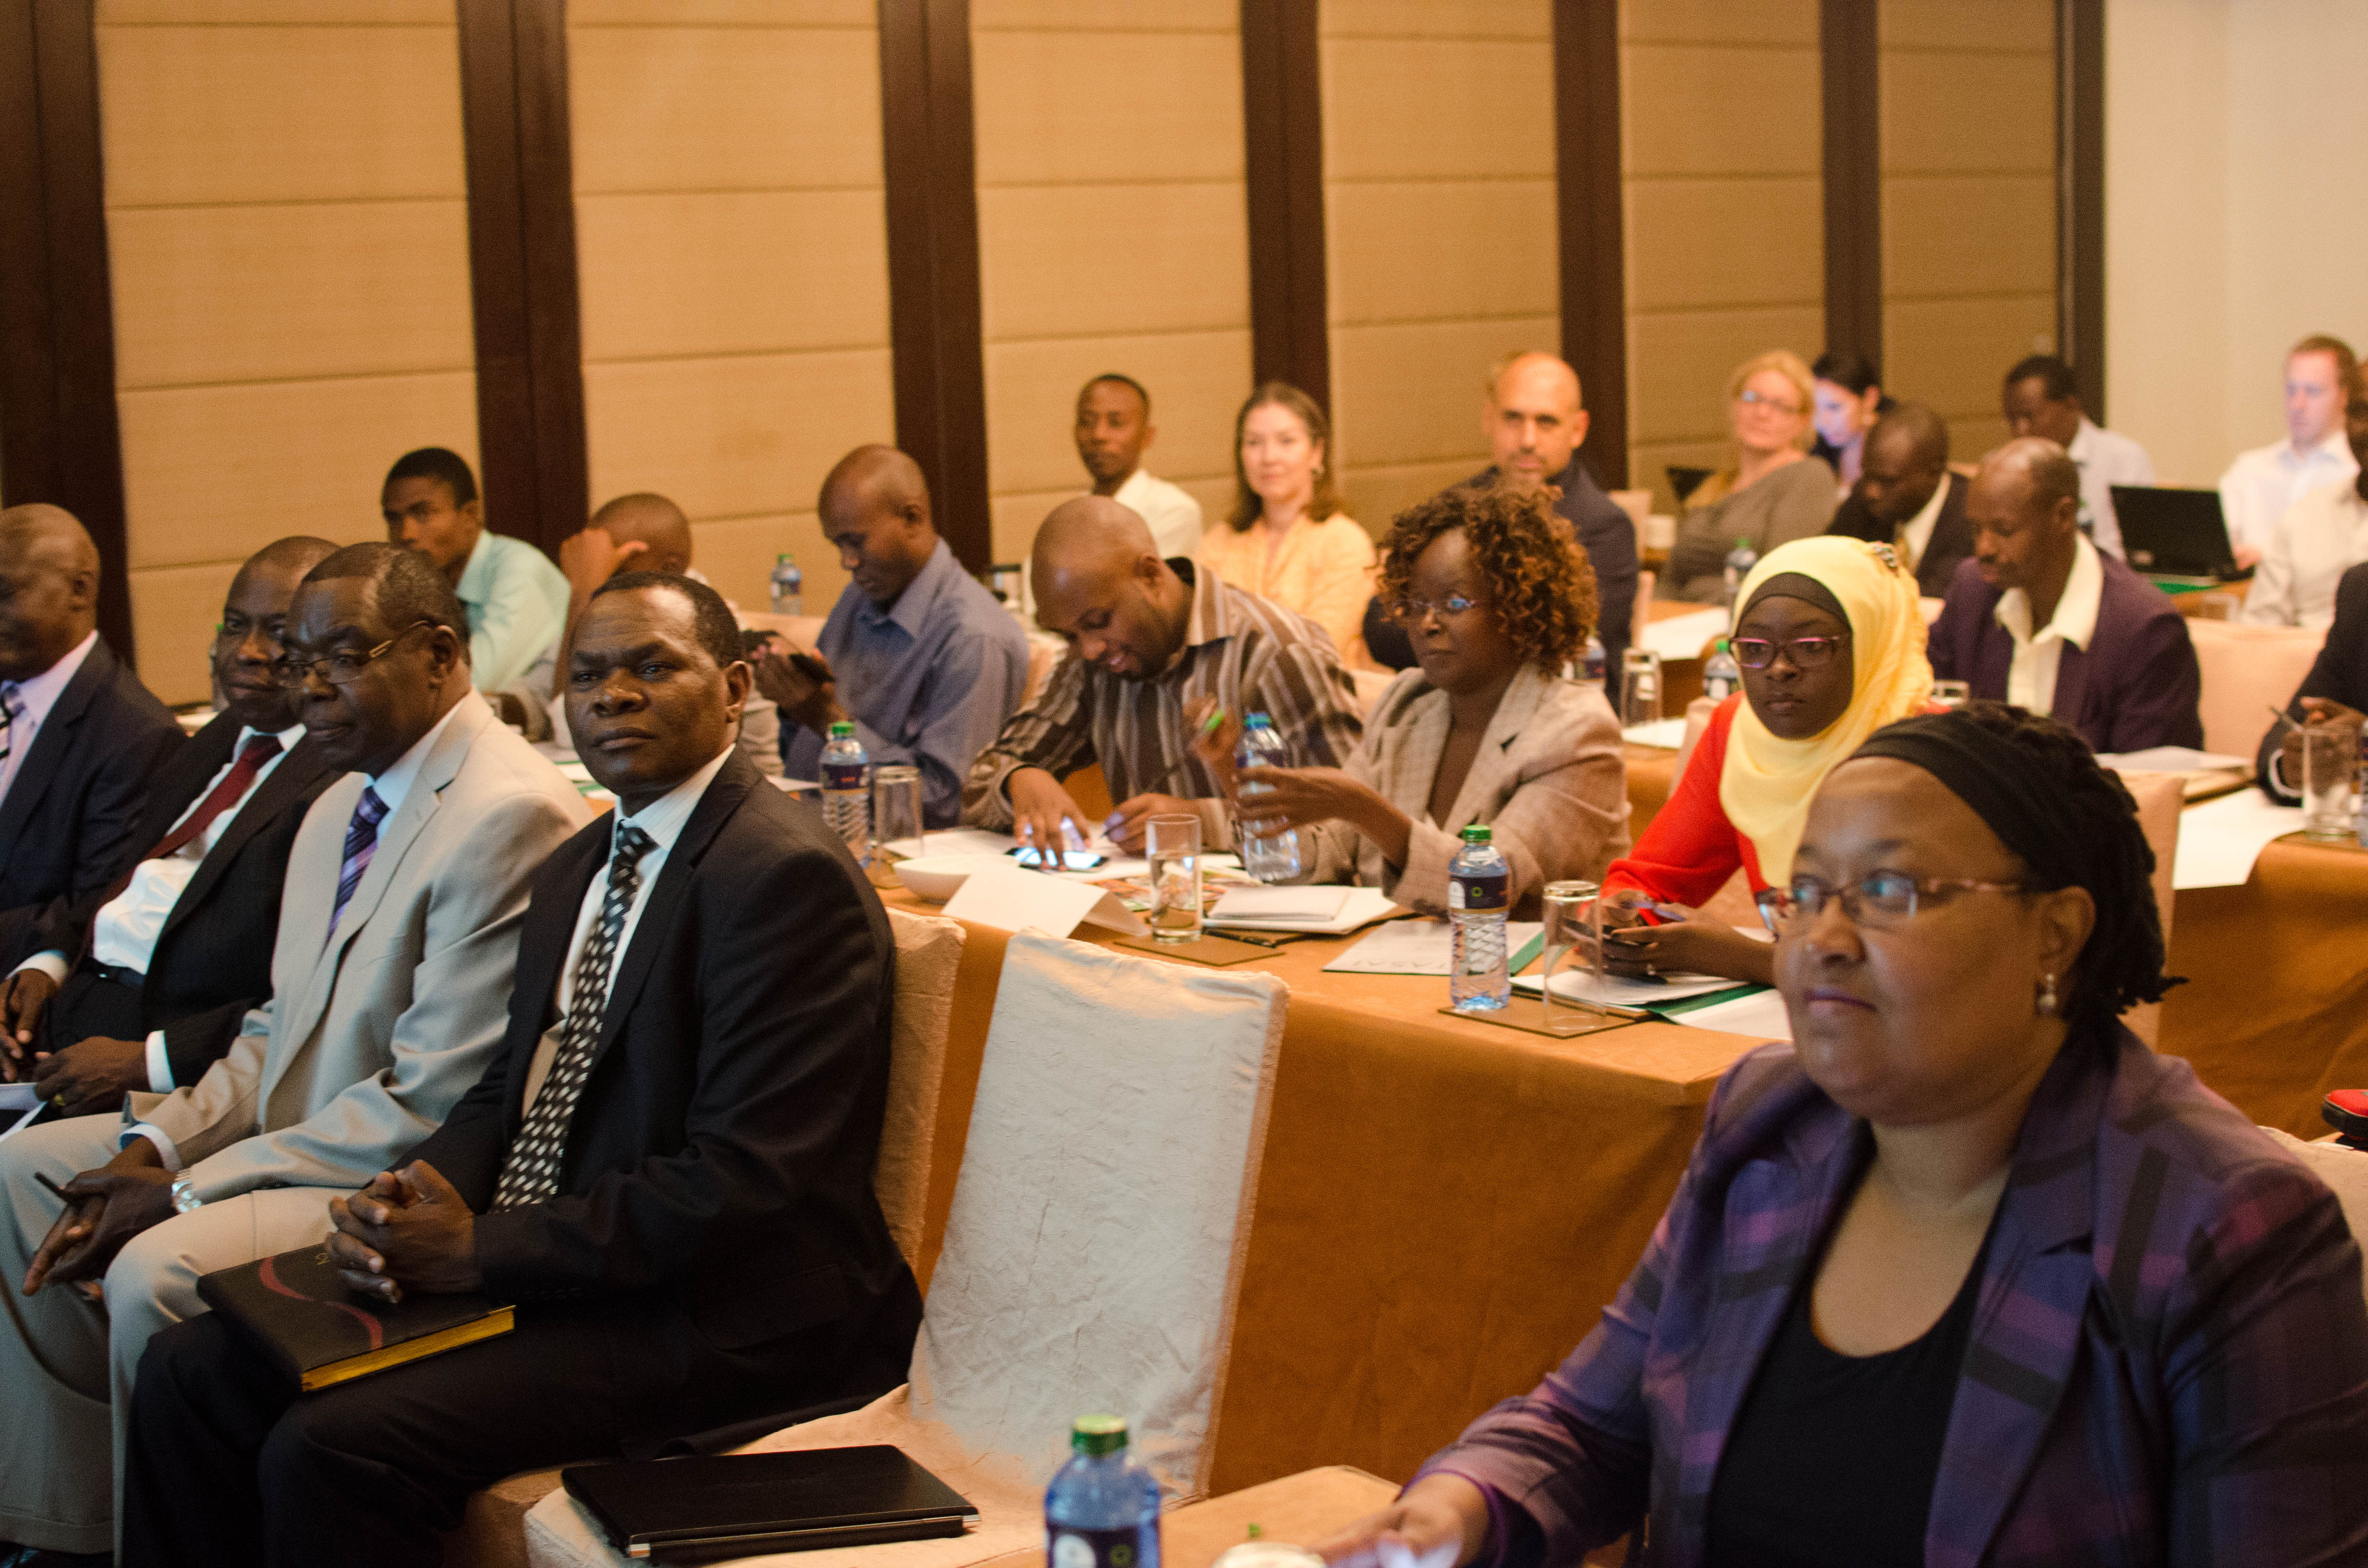 Delegates present at the TASAI launch. Photo Credit: Agri-Experience